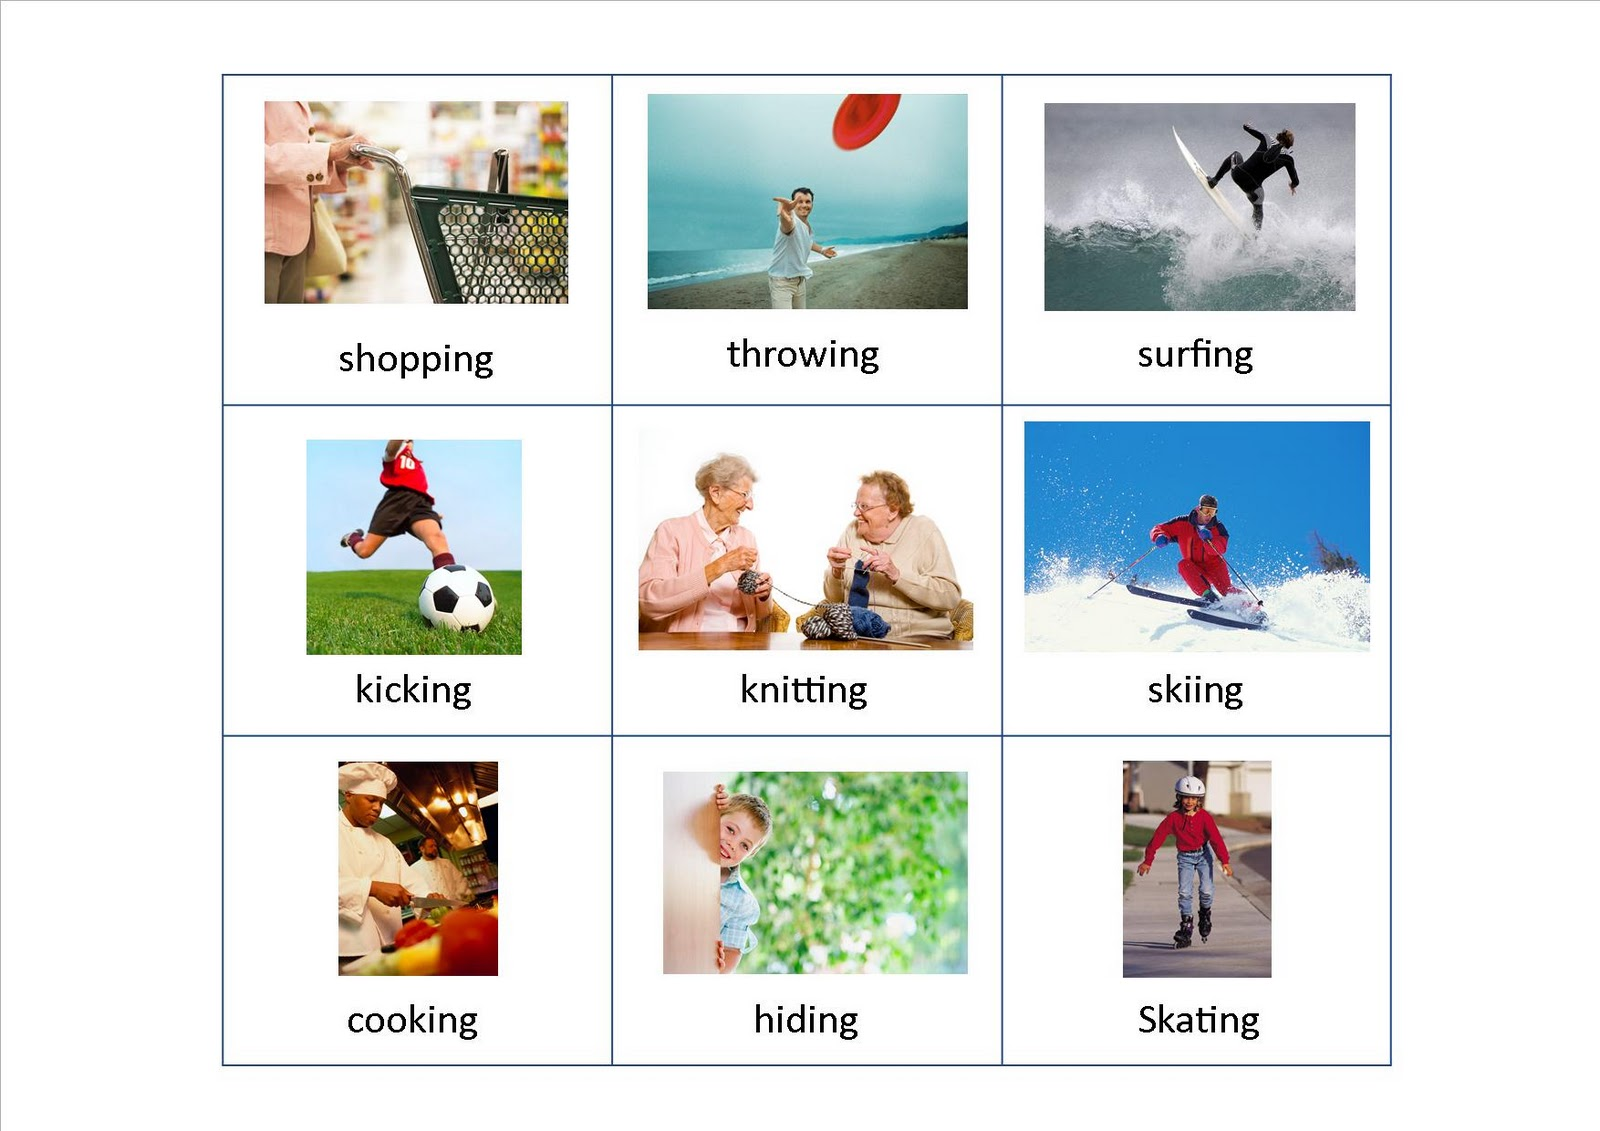 Worksheet Free Online Flashcards flashcards with words for learning kids animals online prechool flashcards